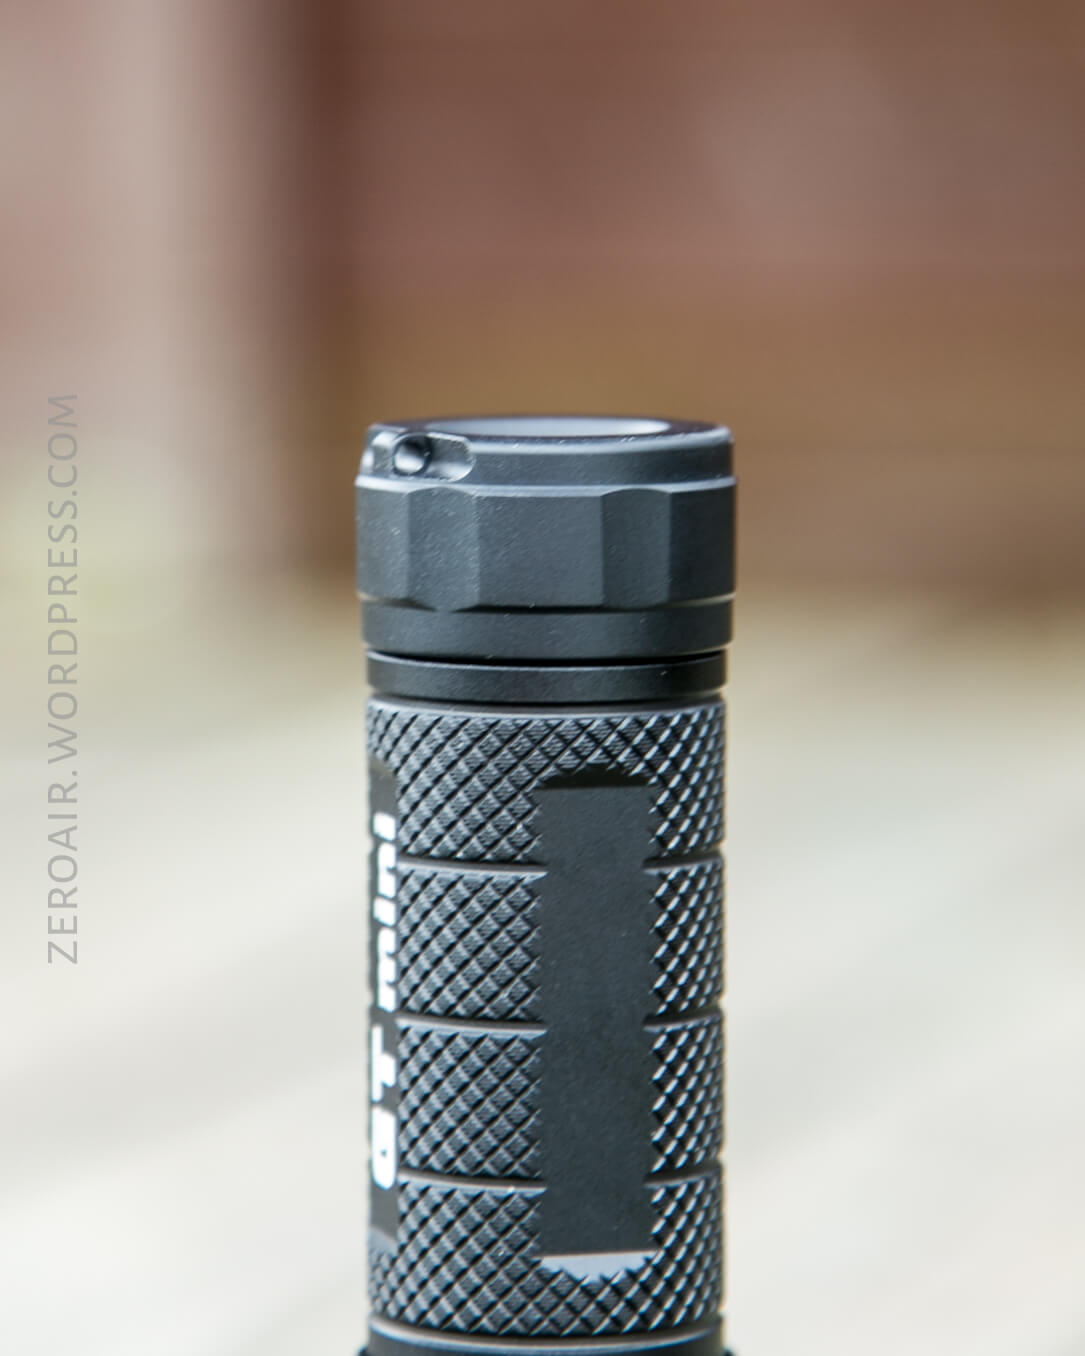 13_zeroair_reviews_blf_gt_mini_nw.jpg